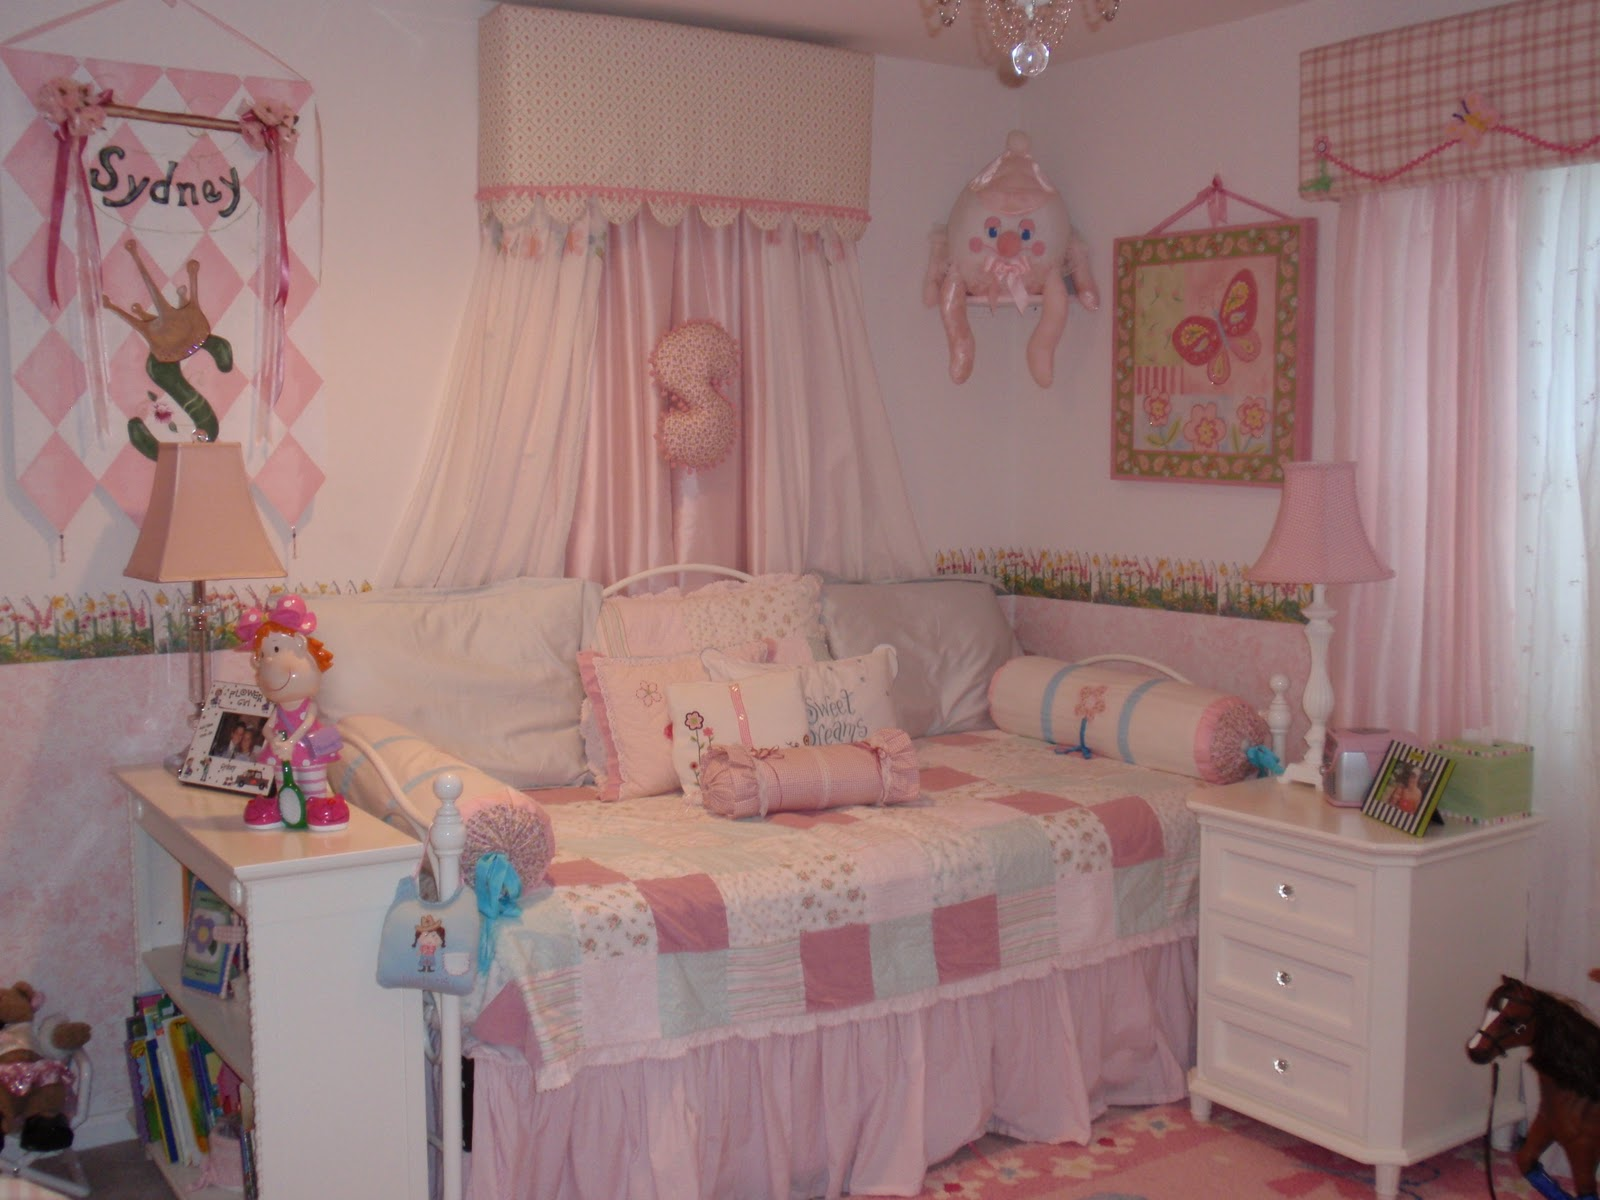 14 Year Old Room Ideas Diy By Design My Daughter 39s Room The Big Reveal Repost